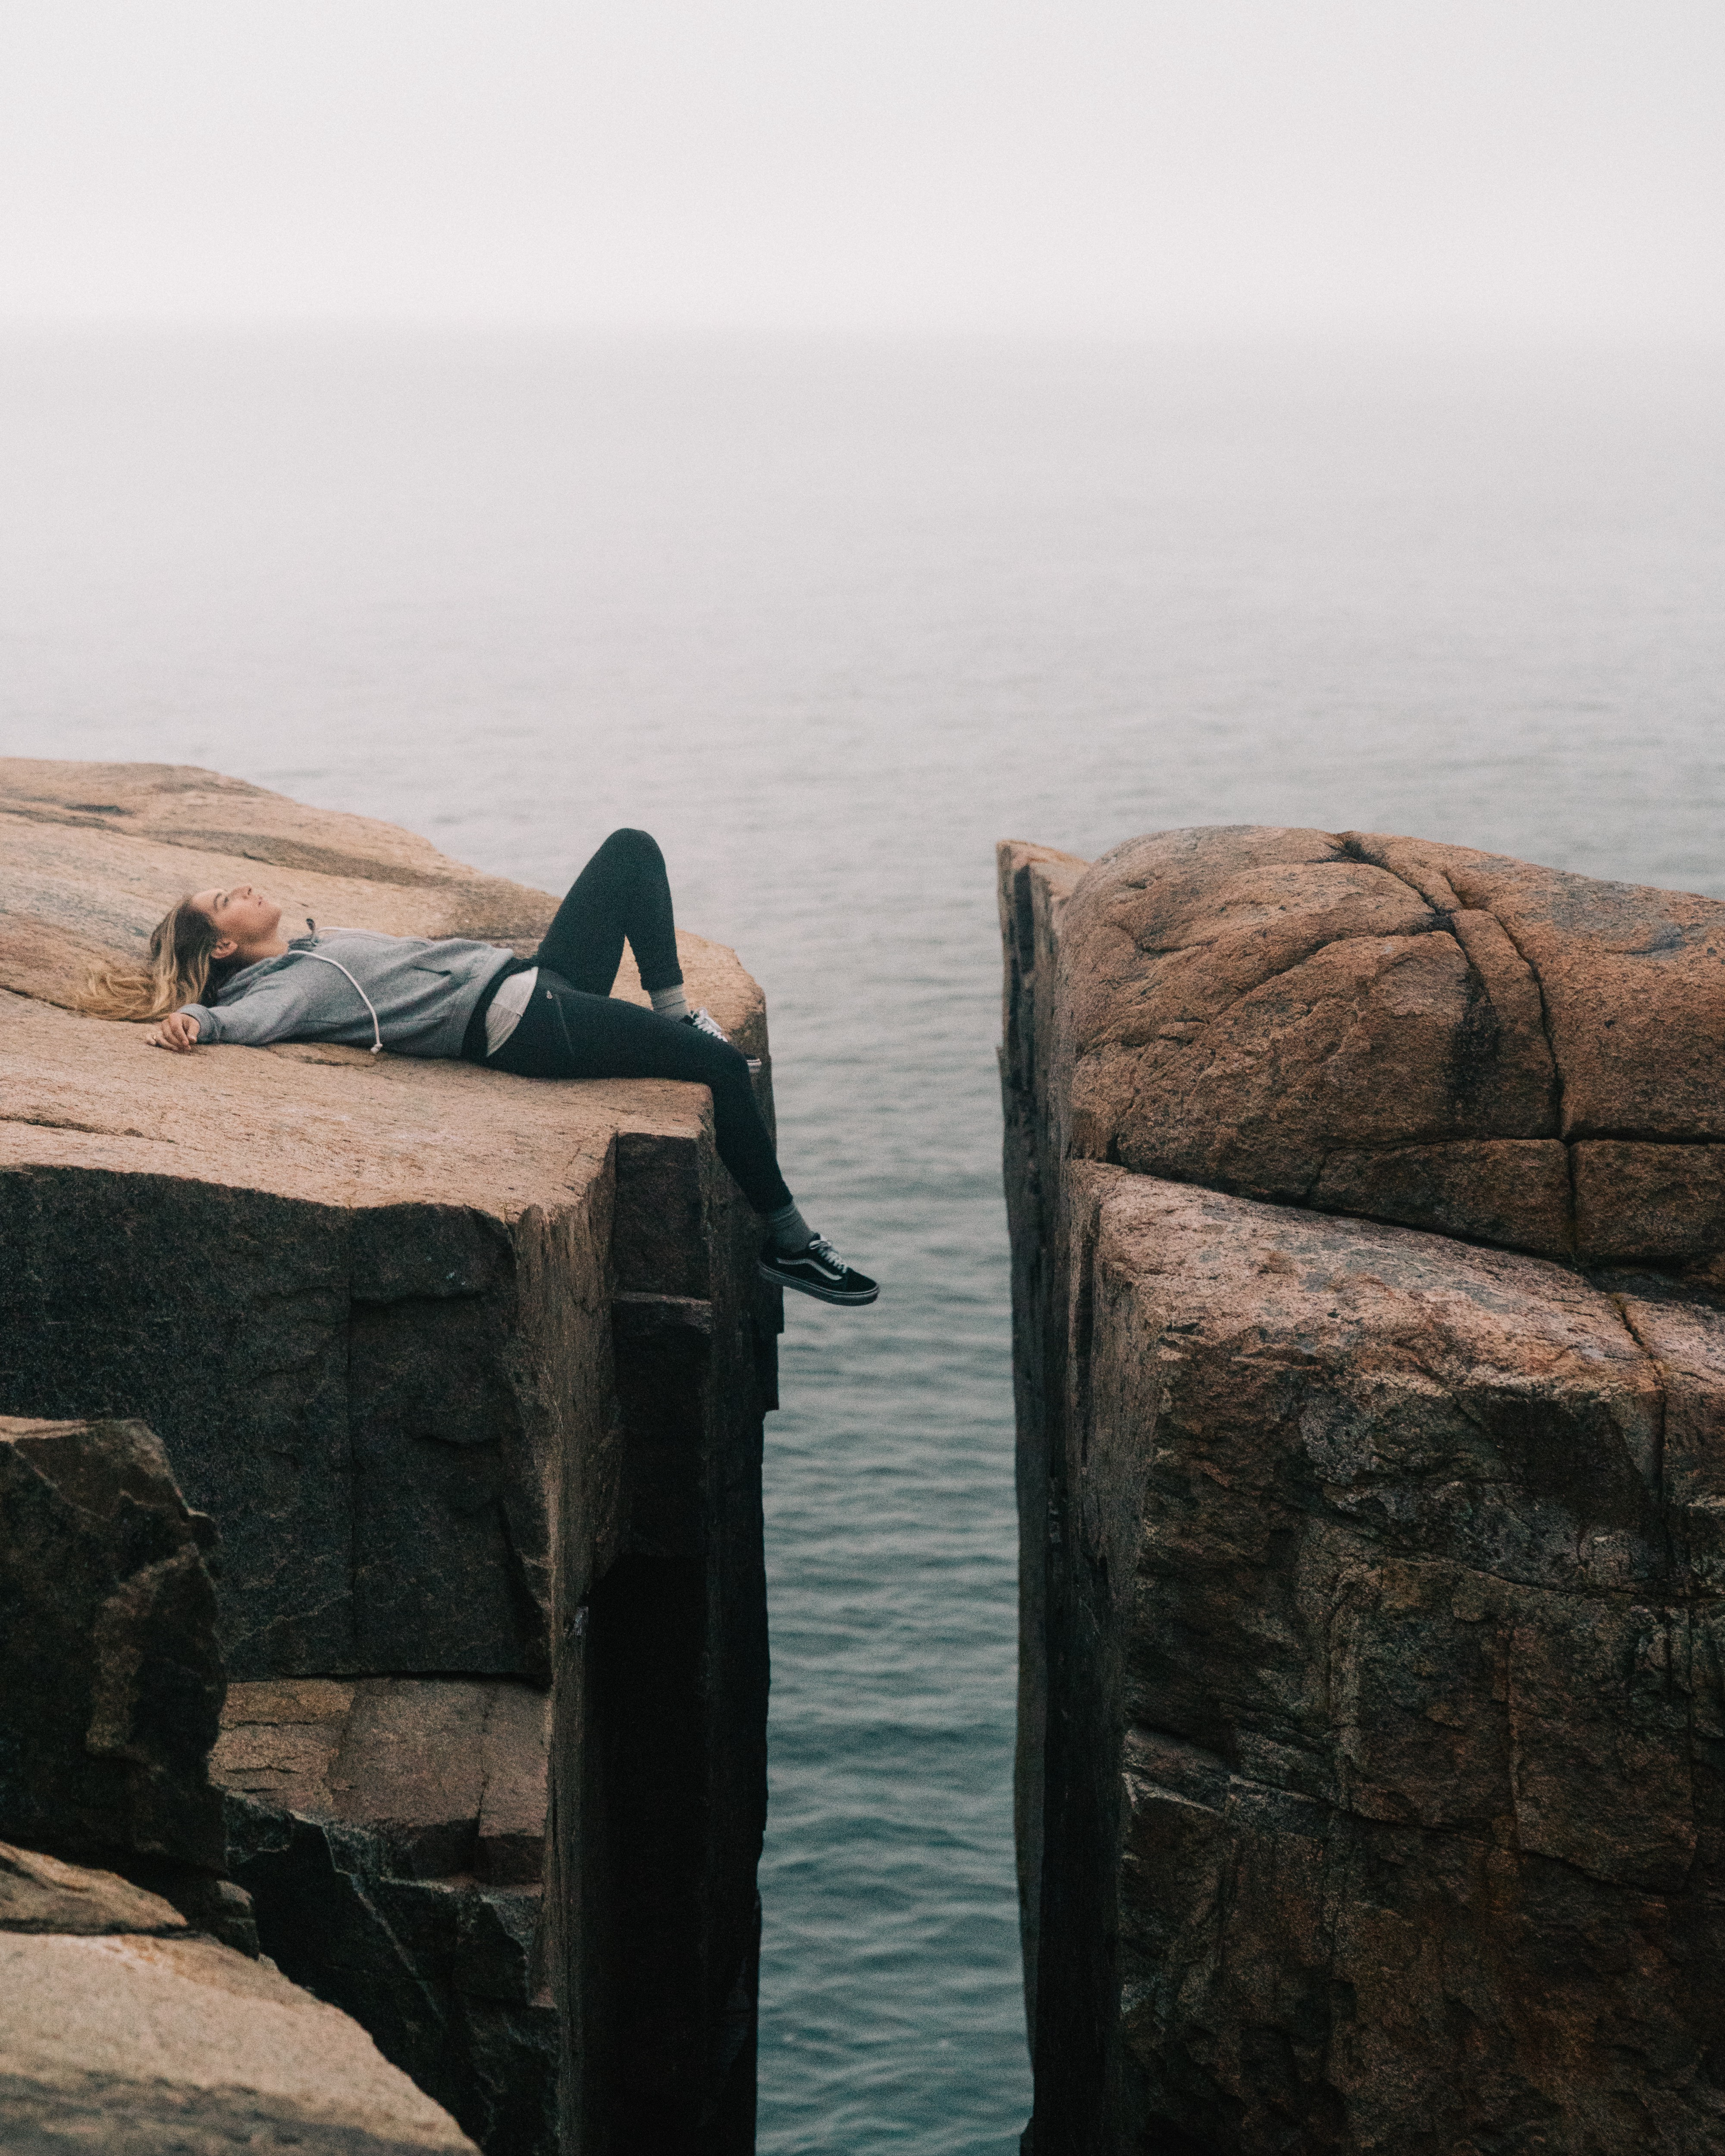 A woman lying down at the edge of a gap between two rocky cliffs